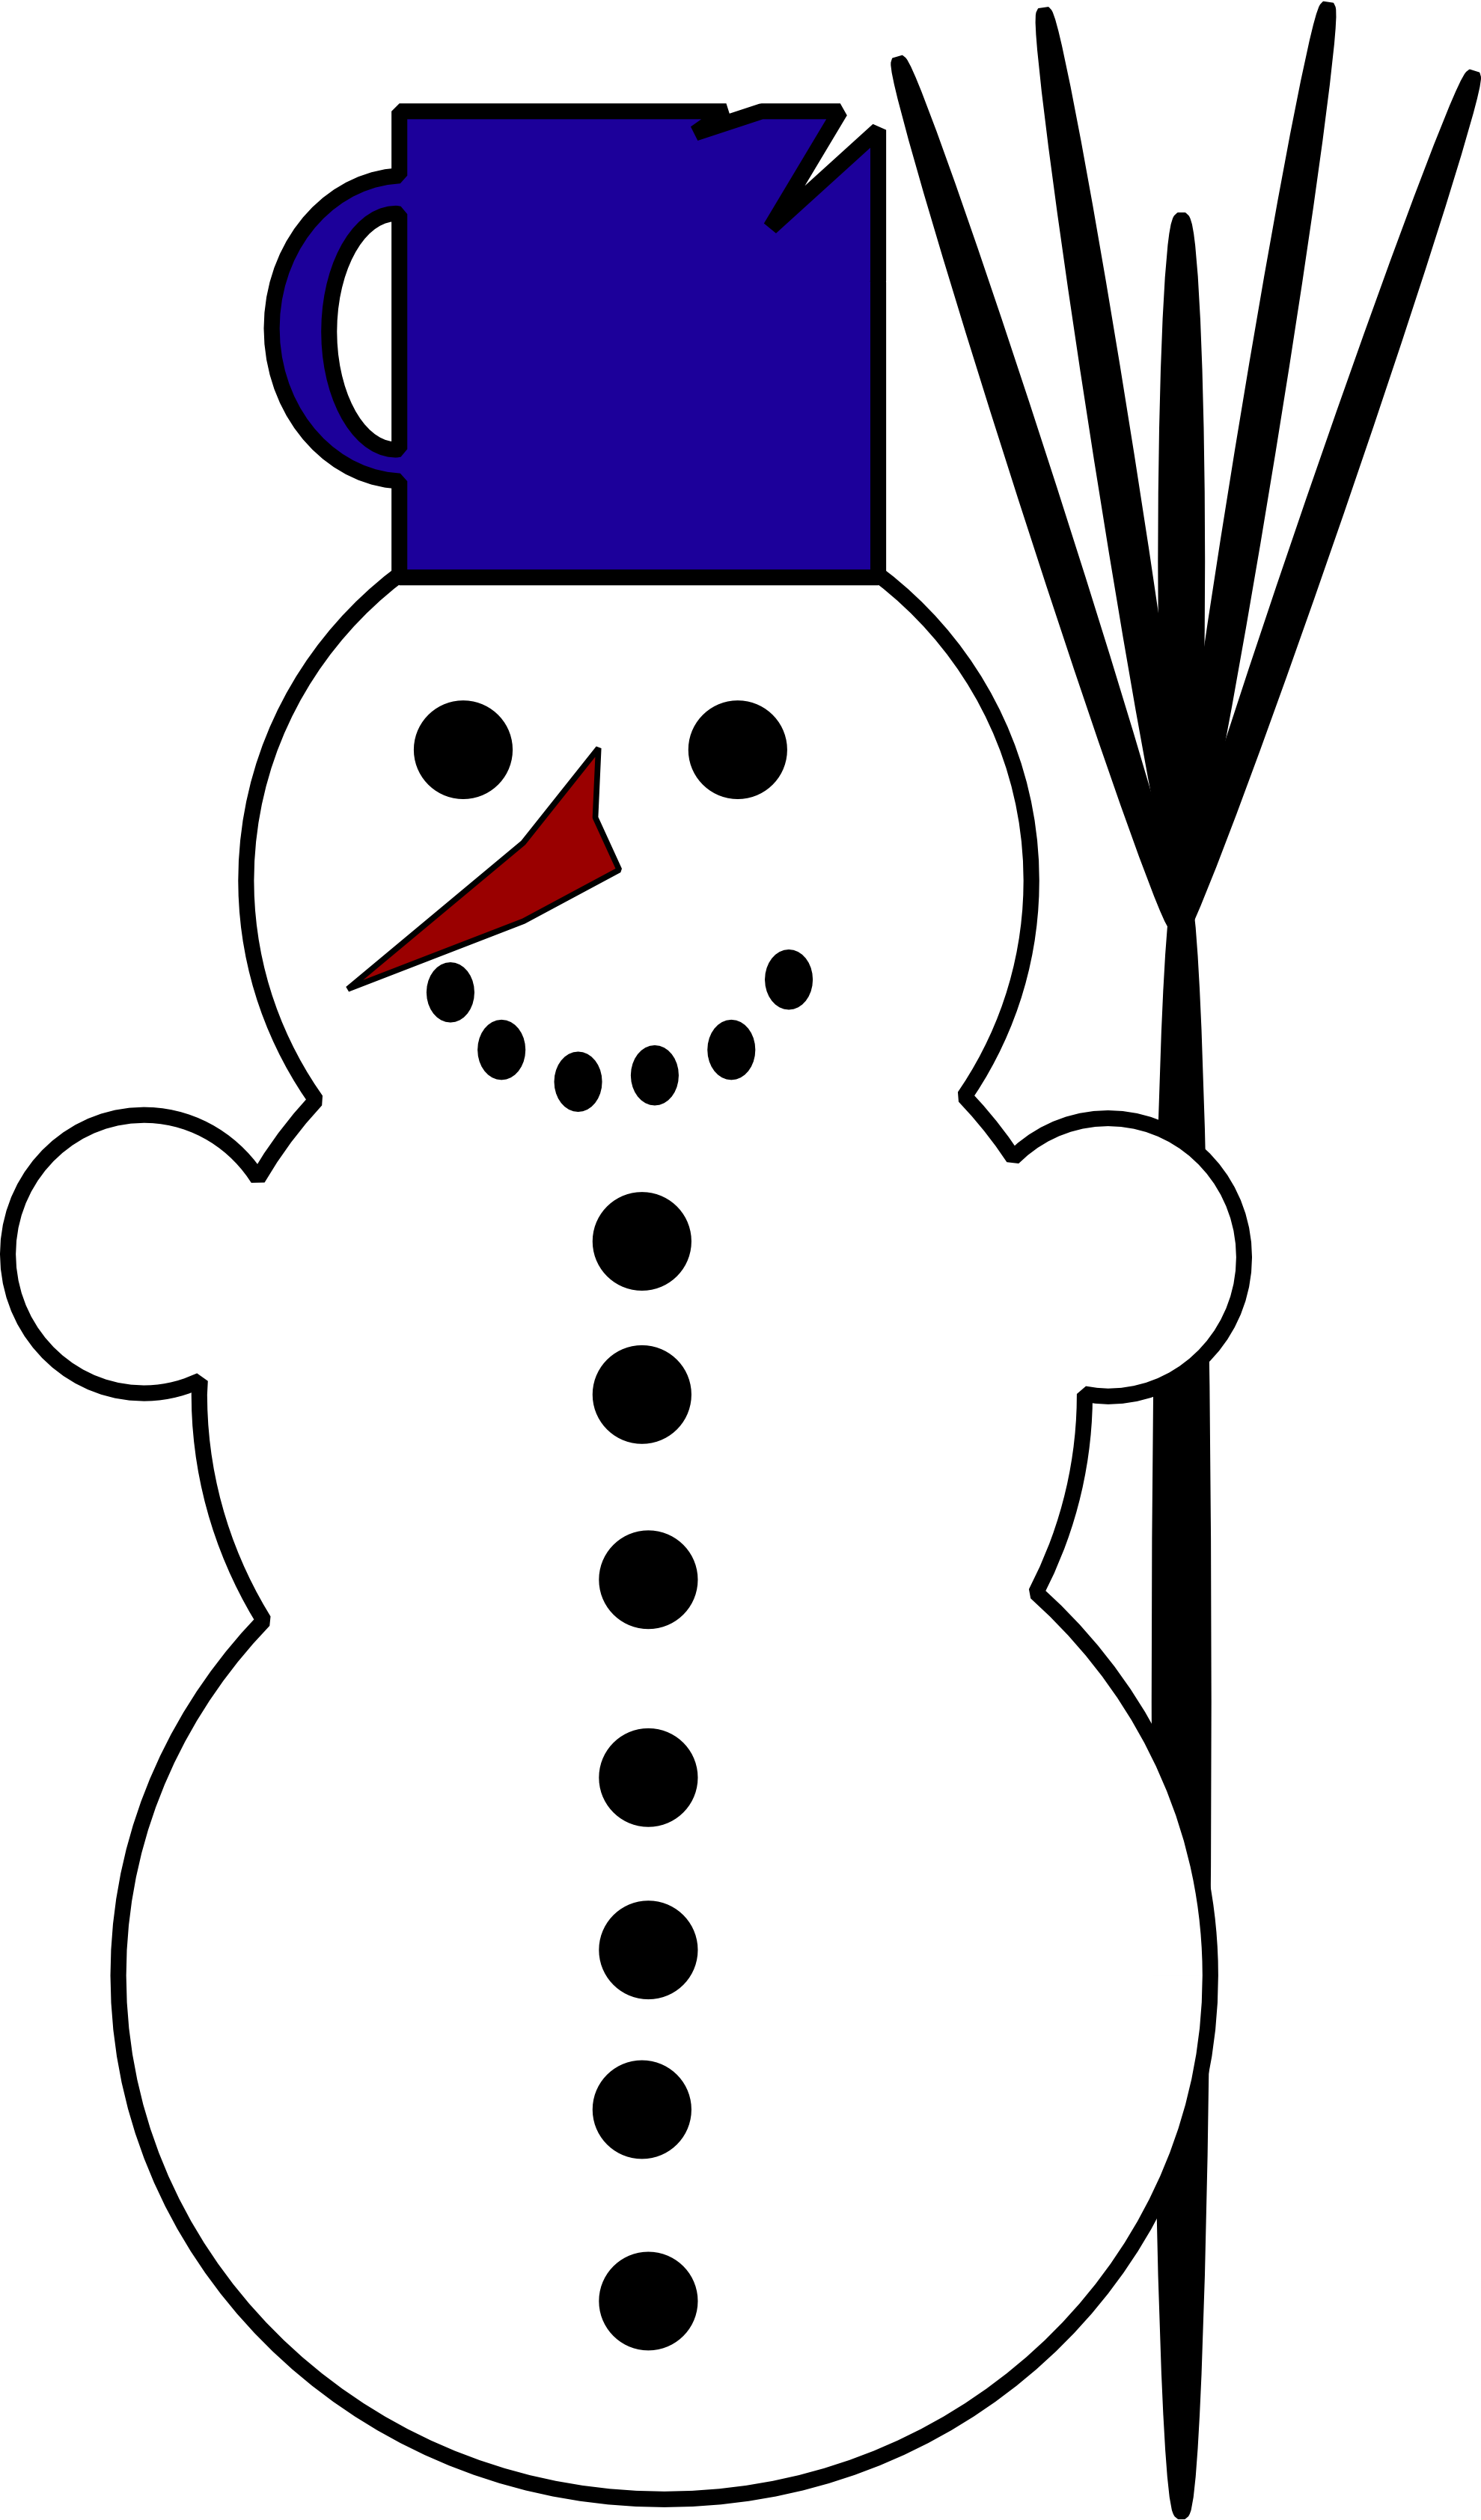 Vector snowman black and white. Machovka scalable graphics svg